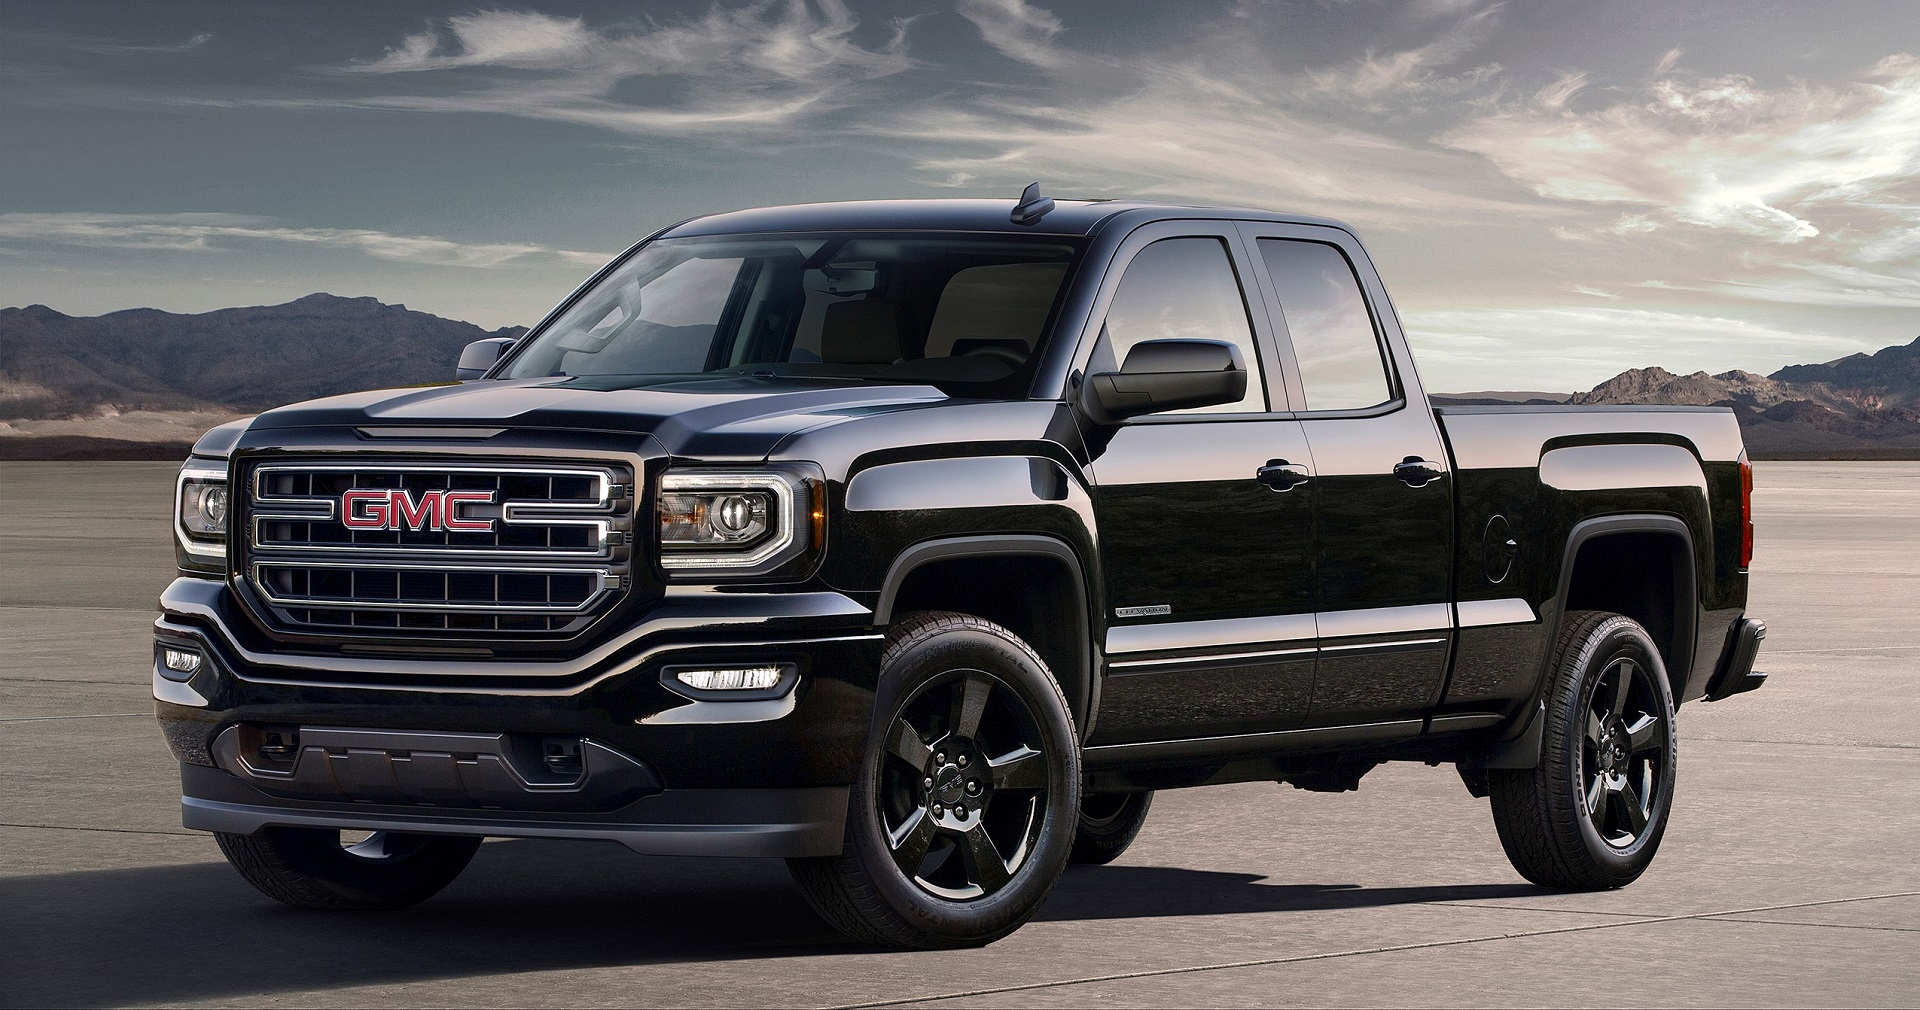 news all trucks and sierra terrain x image gmc information